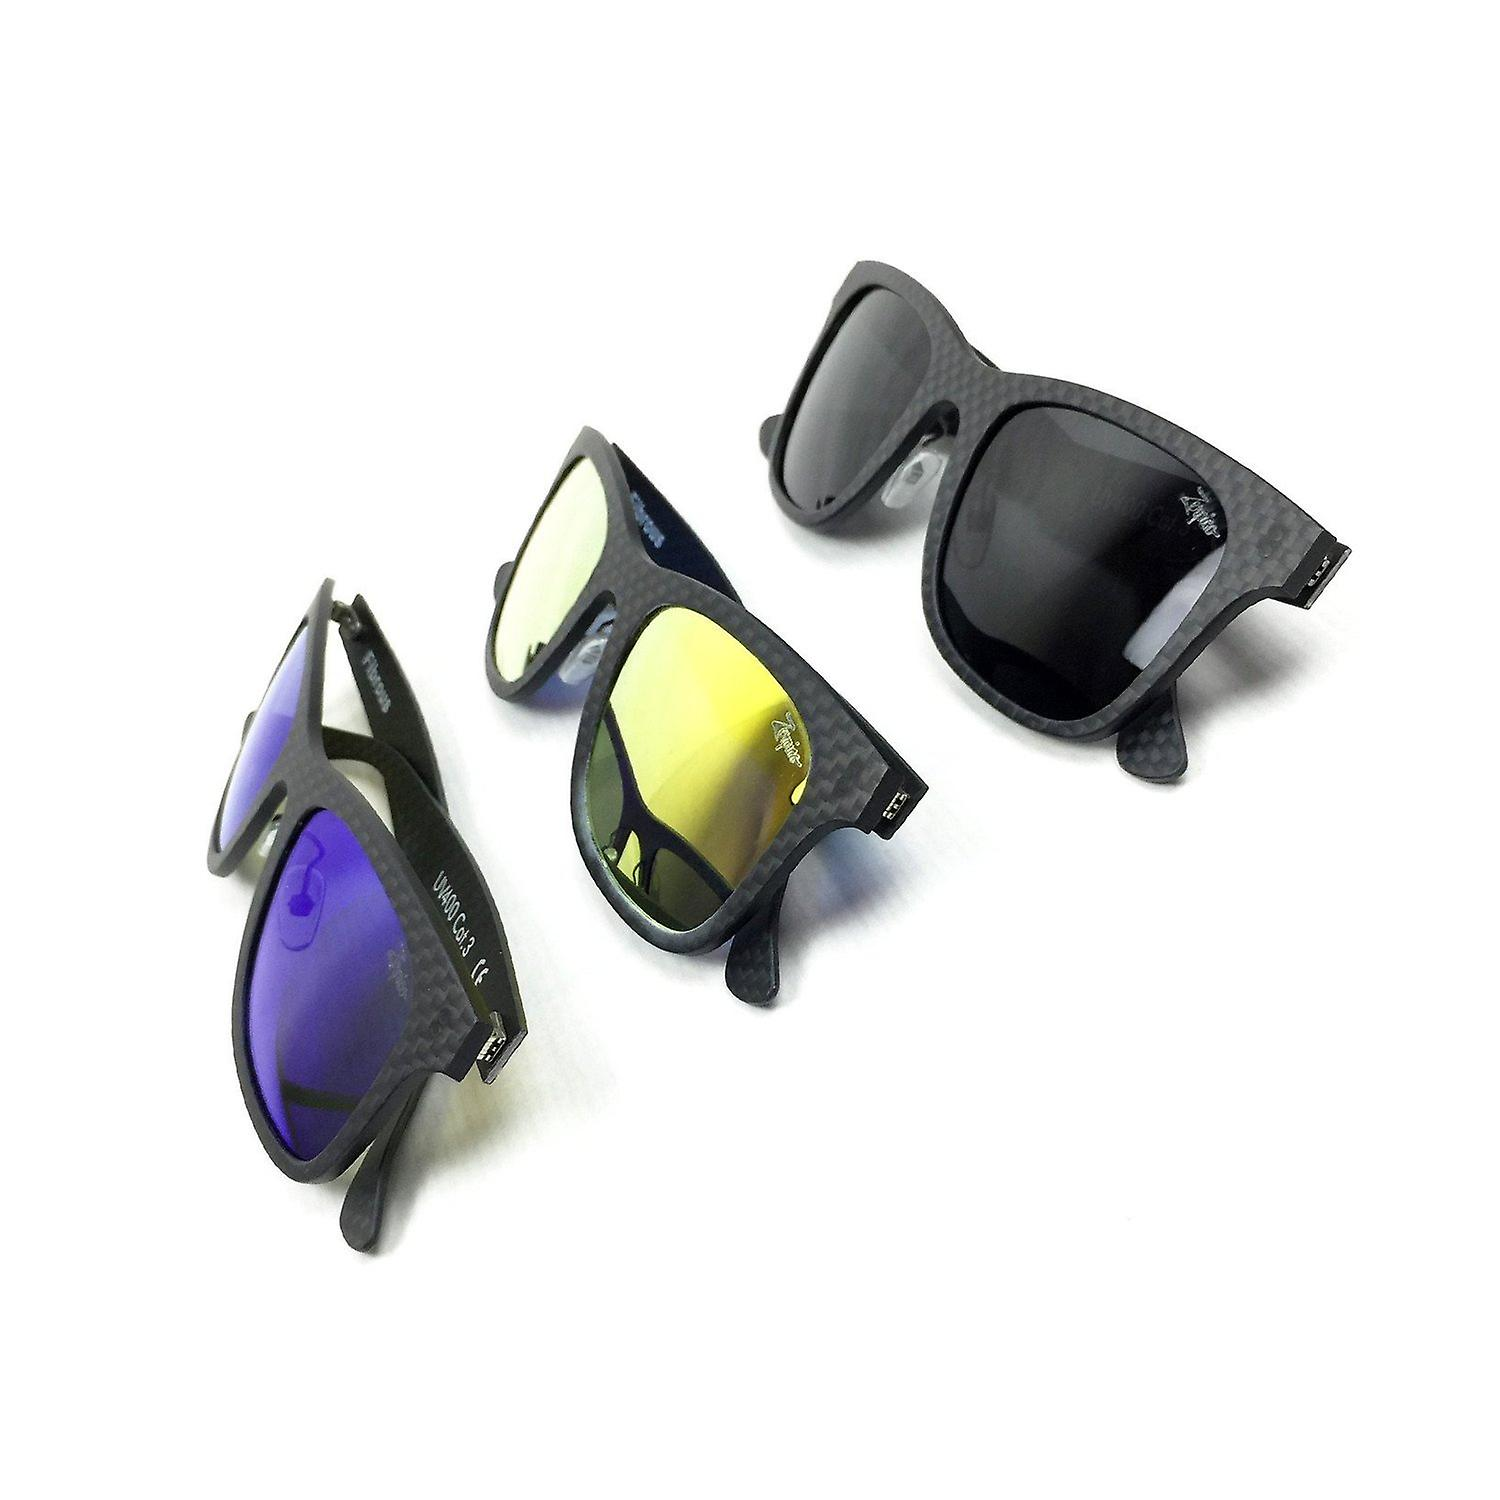 Fibrous - Extra Sunglass Lenses - For Old Versions